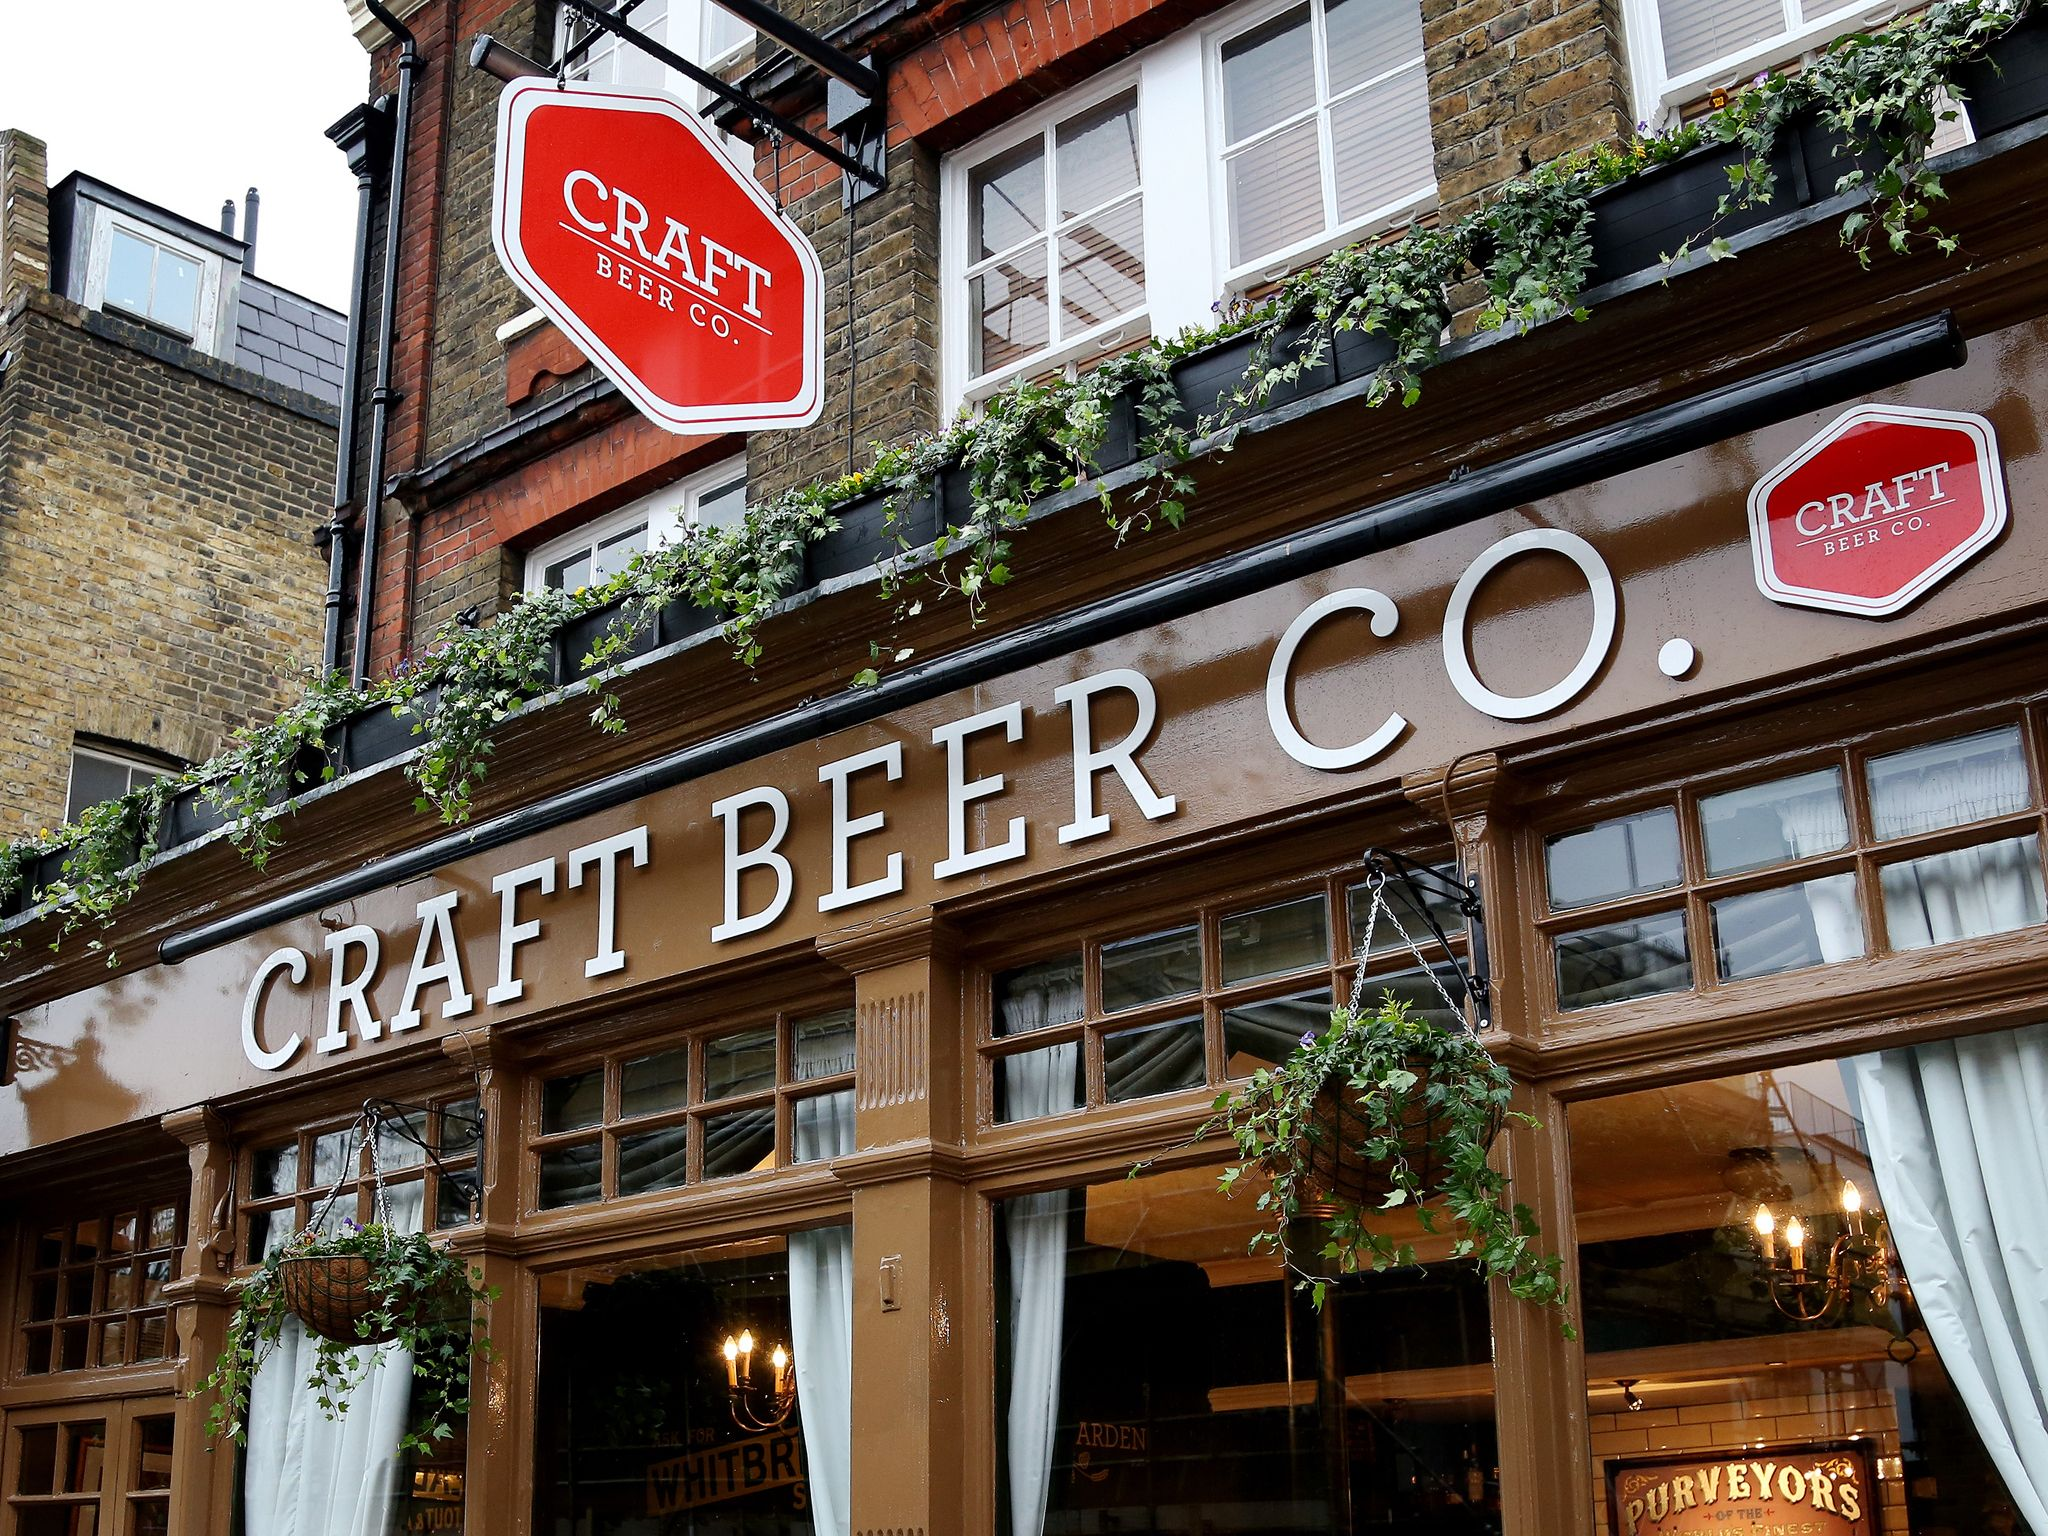 10+ Craft beer company london ideas